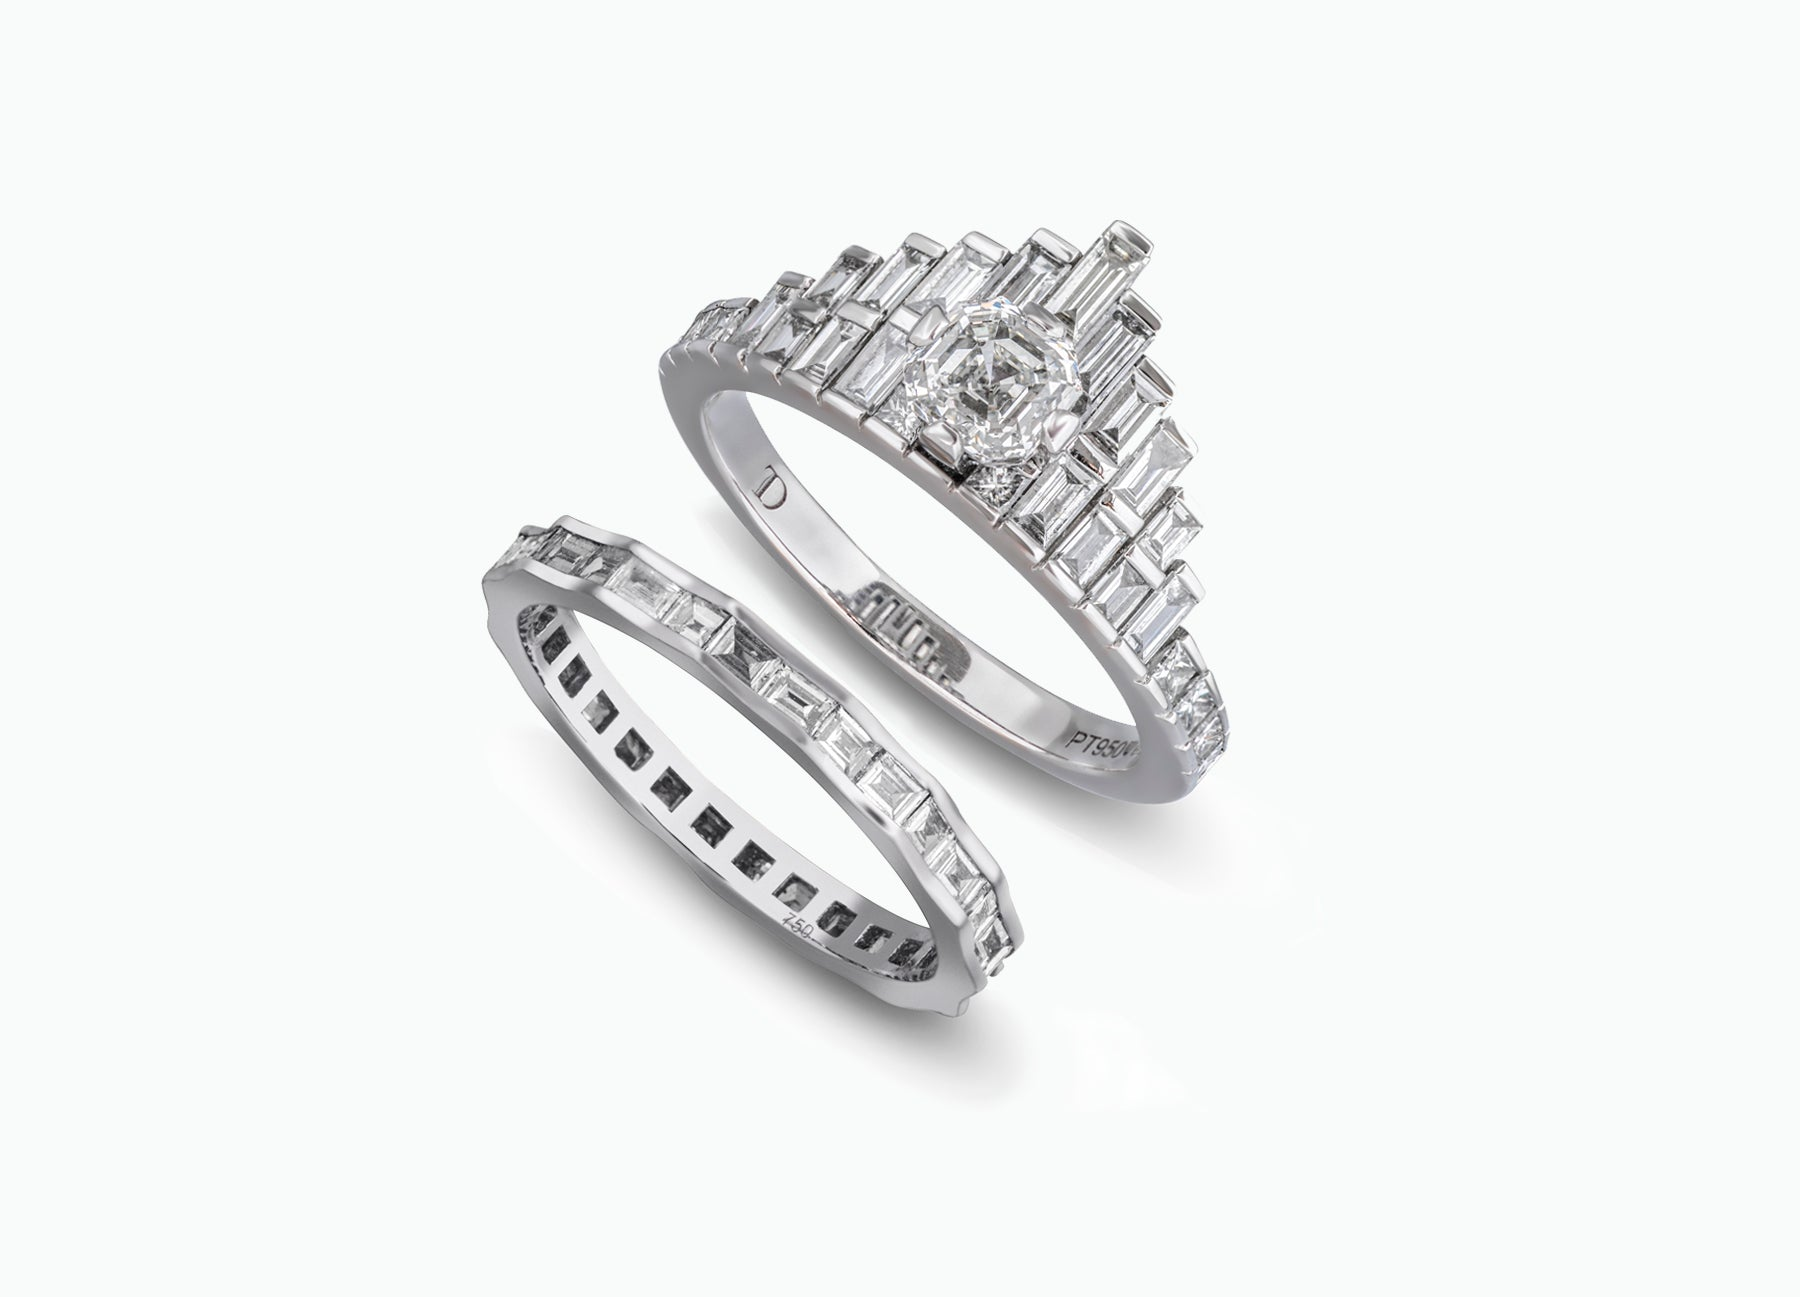 ROYAL ASSCHER BRIDAL RING SET IN WHITE GOLD